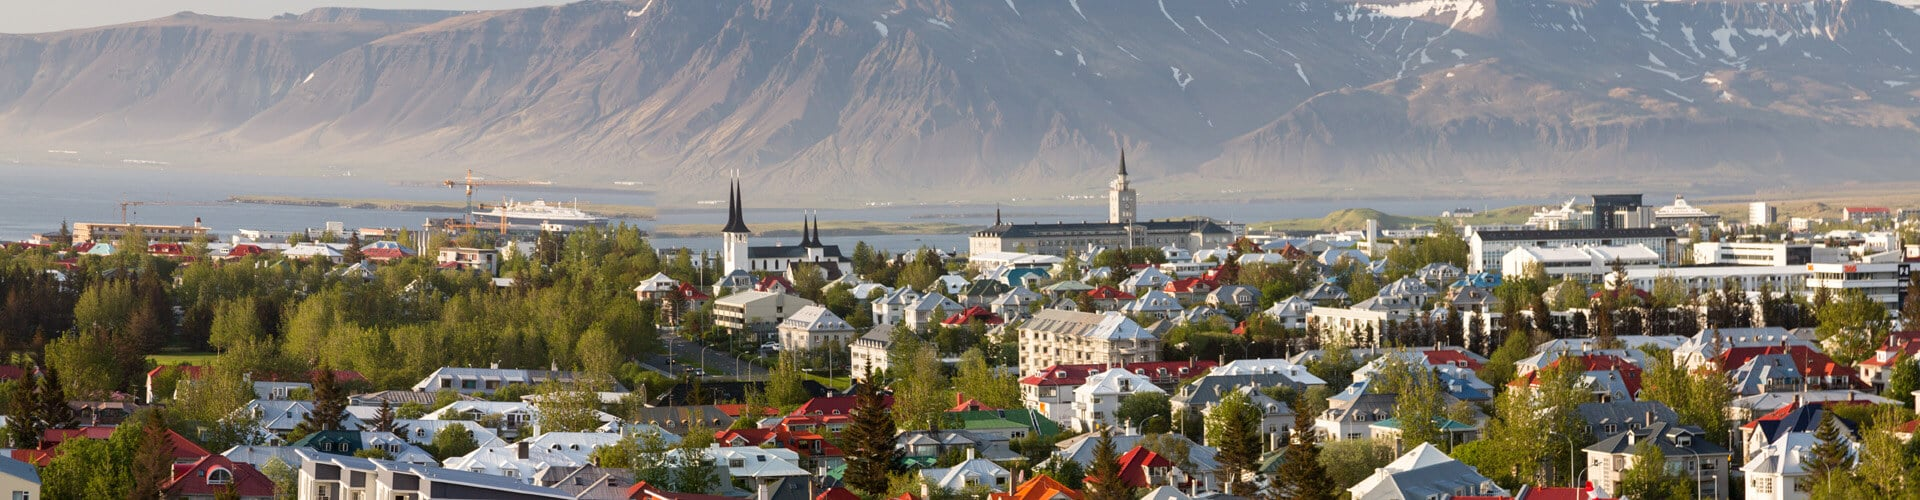 Reykjavik, Iceland: The City That Will be Fossil Fuel Free by 2050